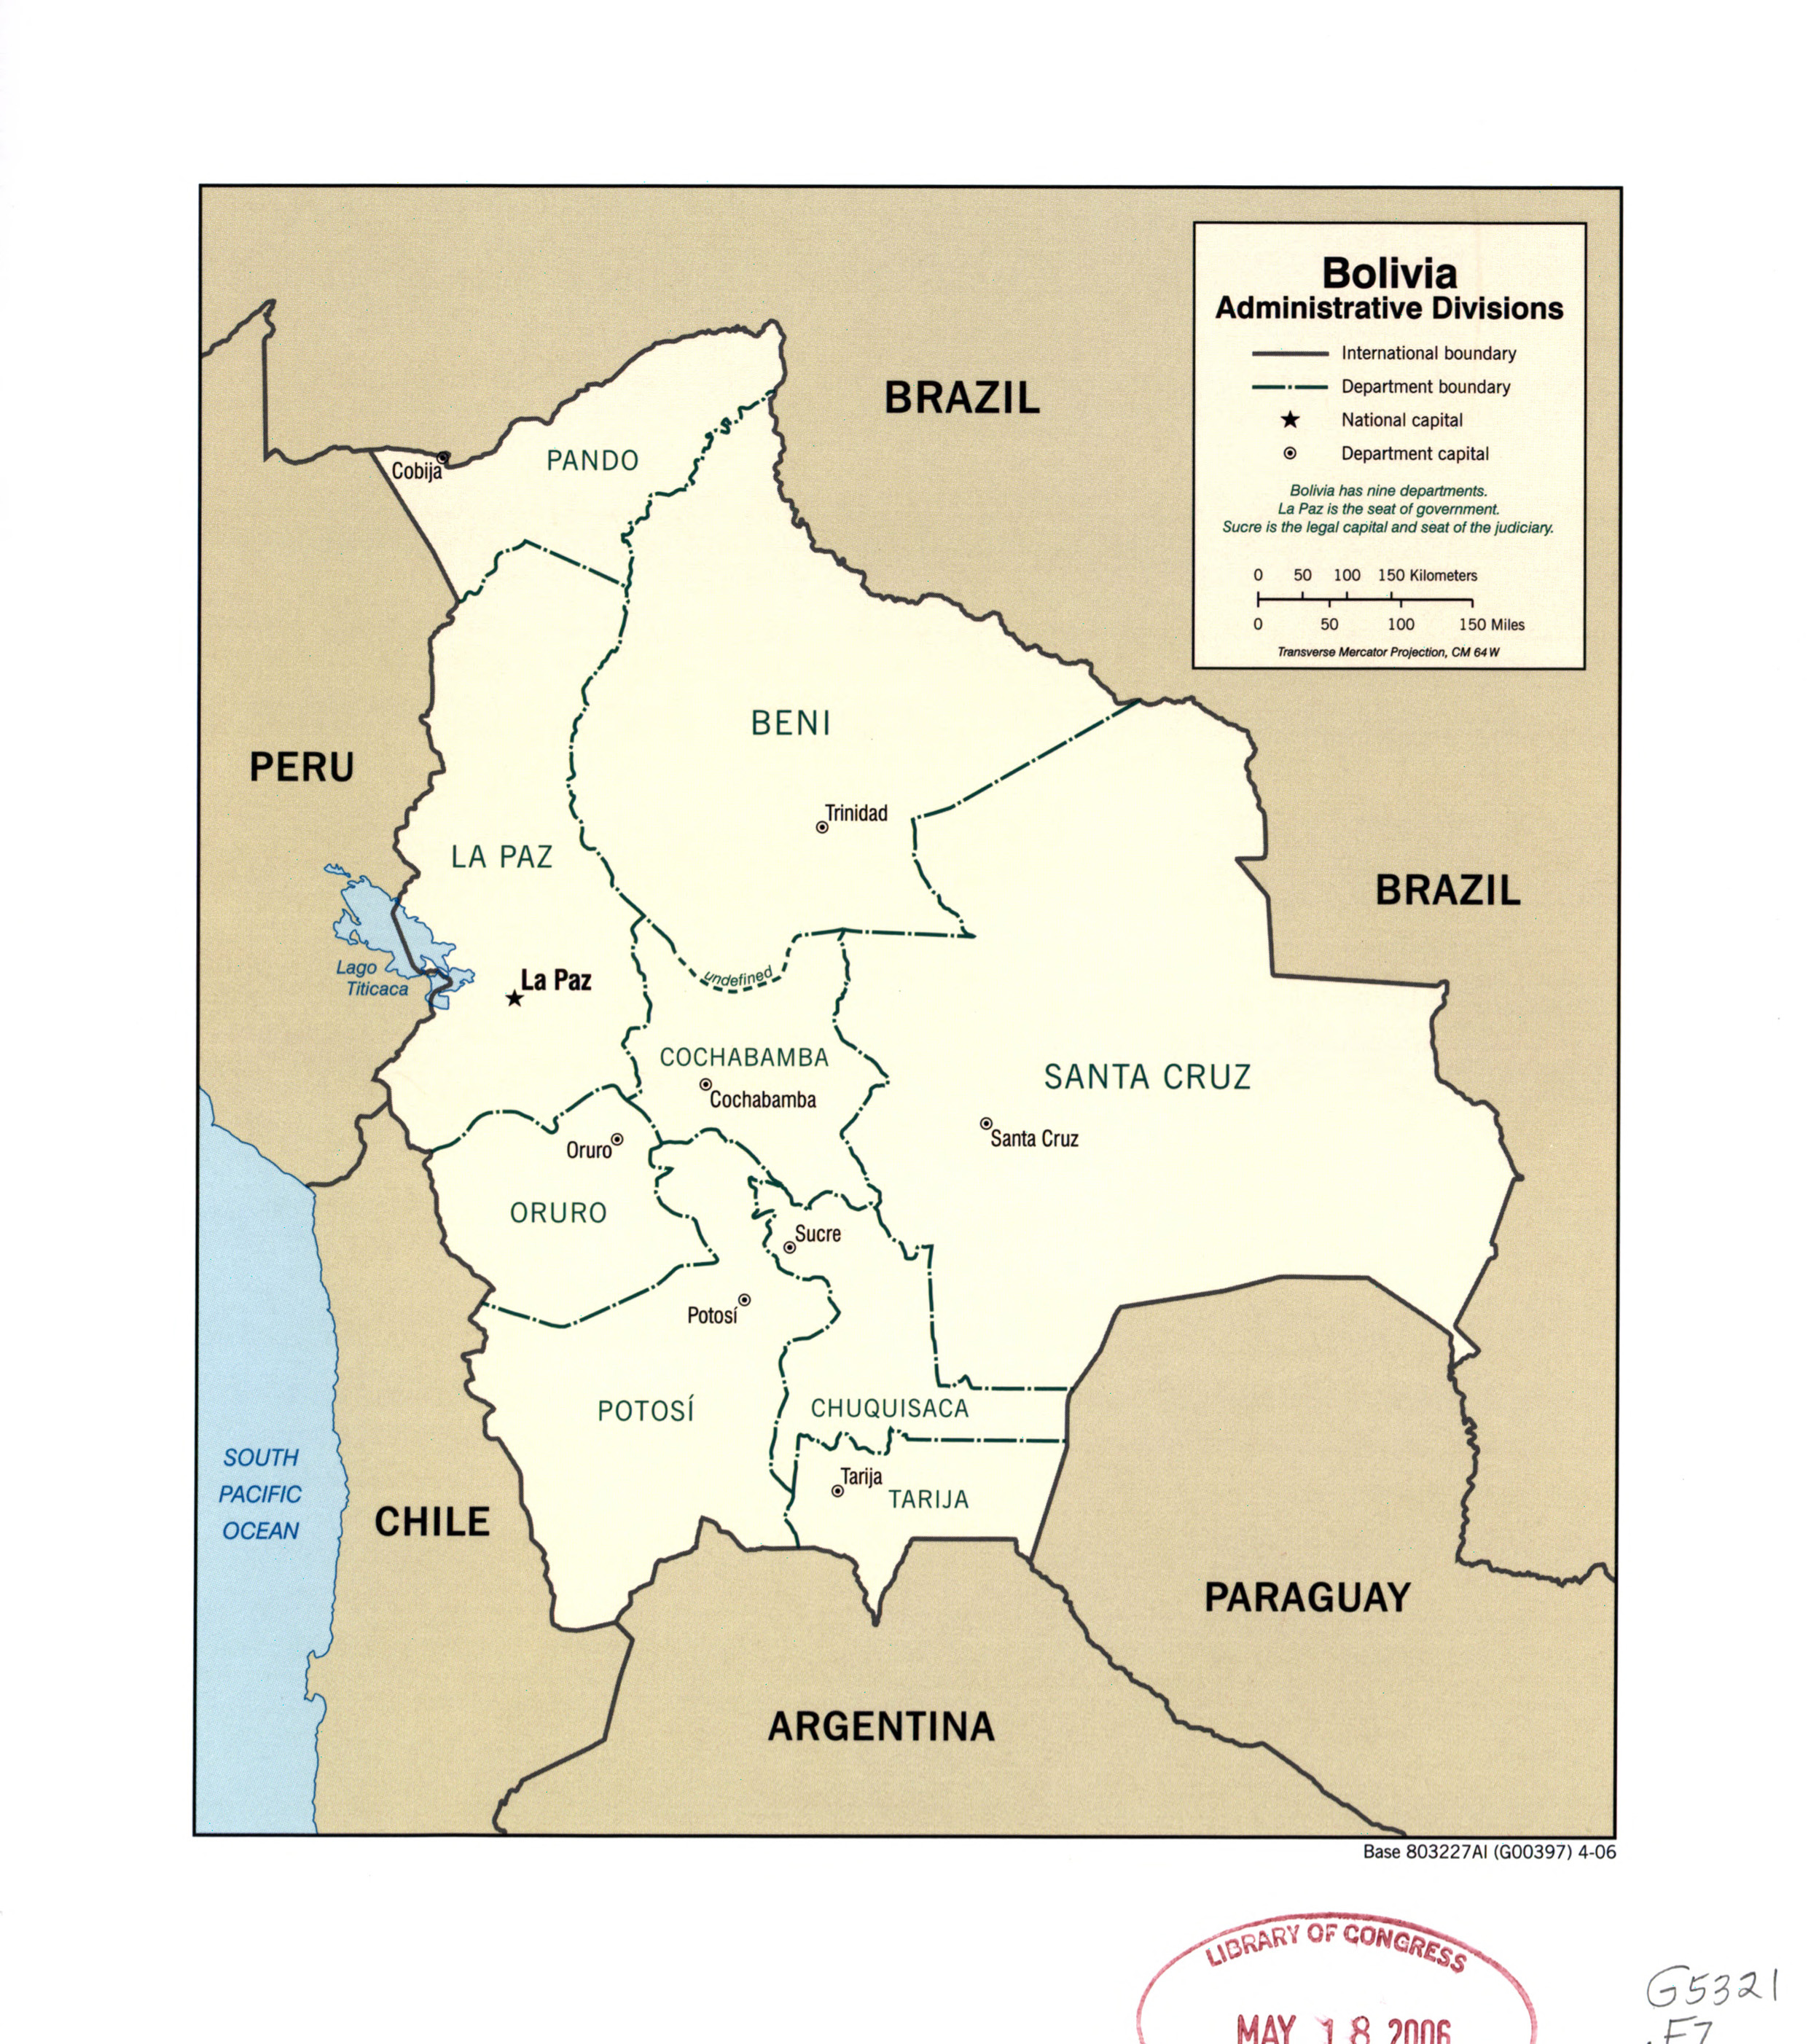 Large detailed administrative divisions map of Bolivia with ... on peru map, colombia map, antigua map, croatia map, algeria map, eritrea map, americas map, angola map, la paz map, mexico map, cameroon map, tahiti map, argentina map, buenos aires map, czech republic map, bosnia map, uae map, canada map, ecuador map, cuba map, brazil map, aruba map, egypt map, el salvador map, oman map, world map, chile map, japan map, andes mountains map, austria map, benin map, trinidad map, china map, spain map, bulgaria map,